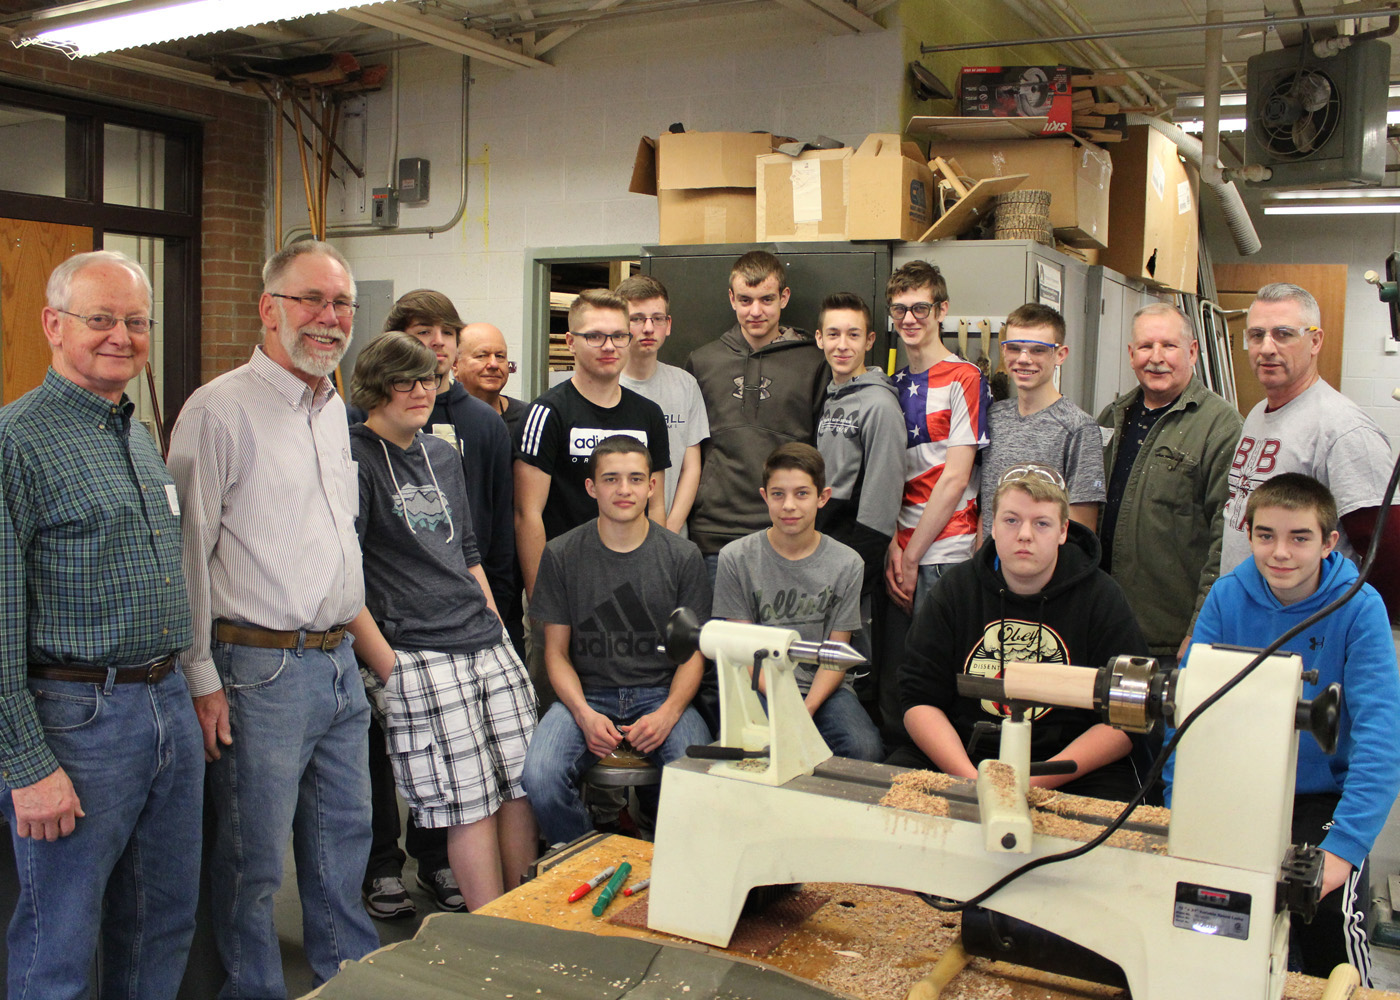 Byron-Bergen students with Finger Lakes Woodturners volunteers David Leupold, Gerald Sheridan, Michael Hachey and David Harp, along with technology teacher Jay Wolcott. Provided photo